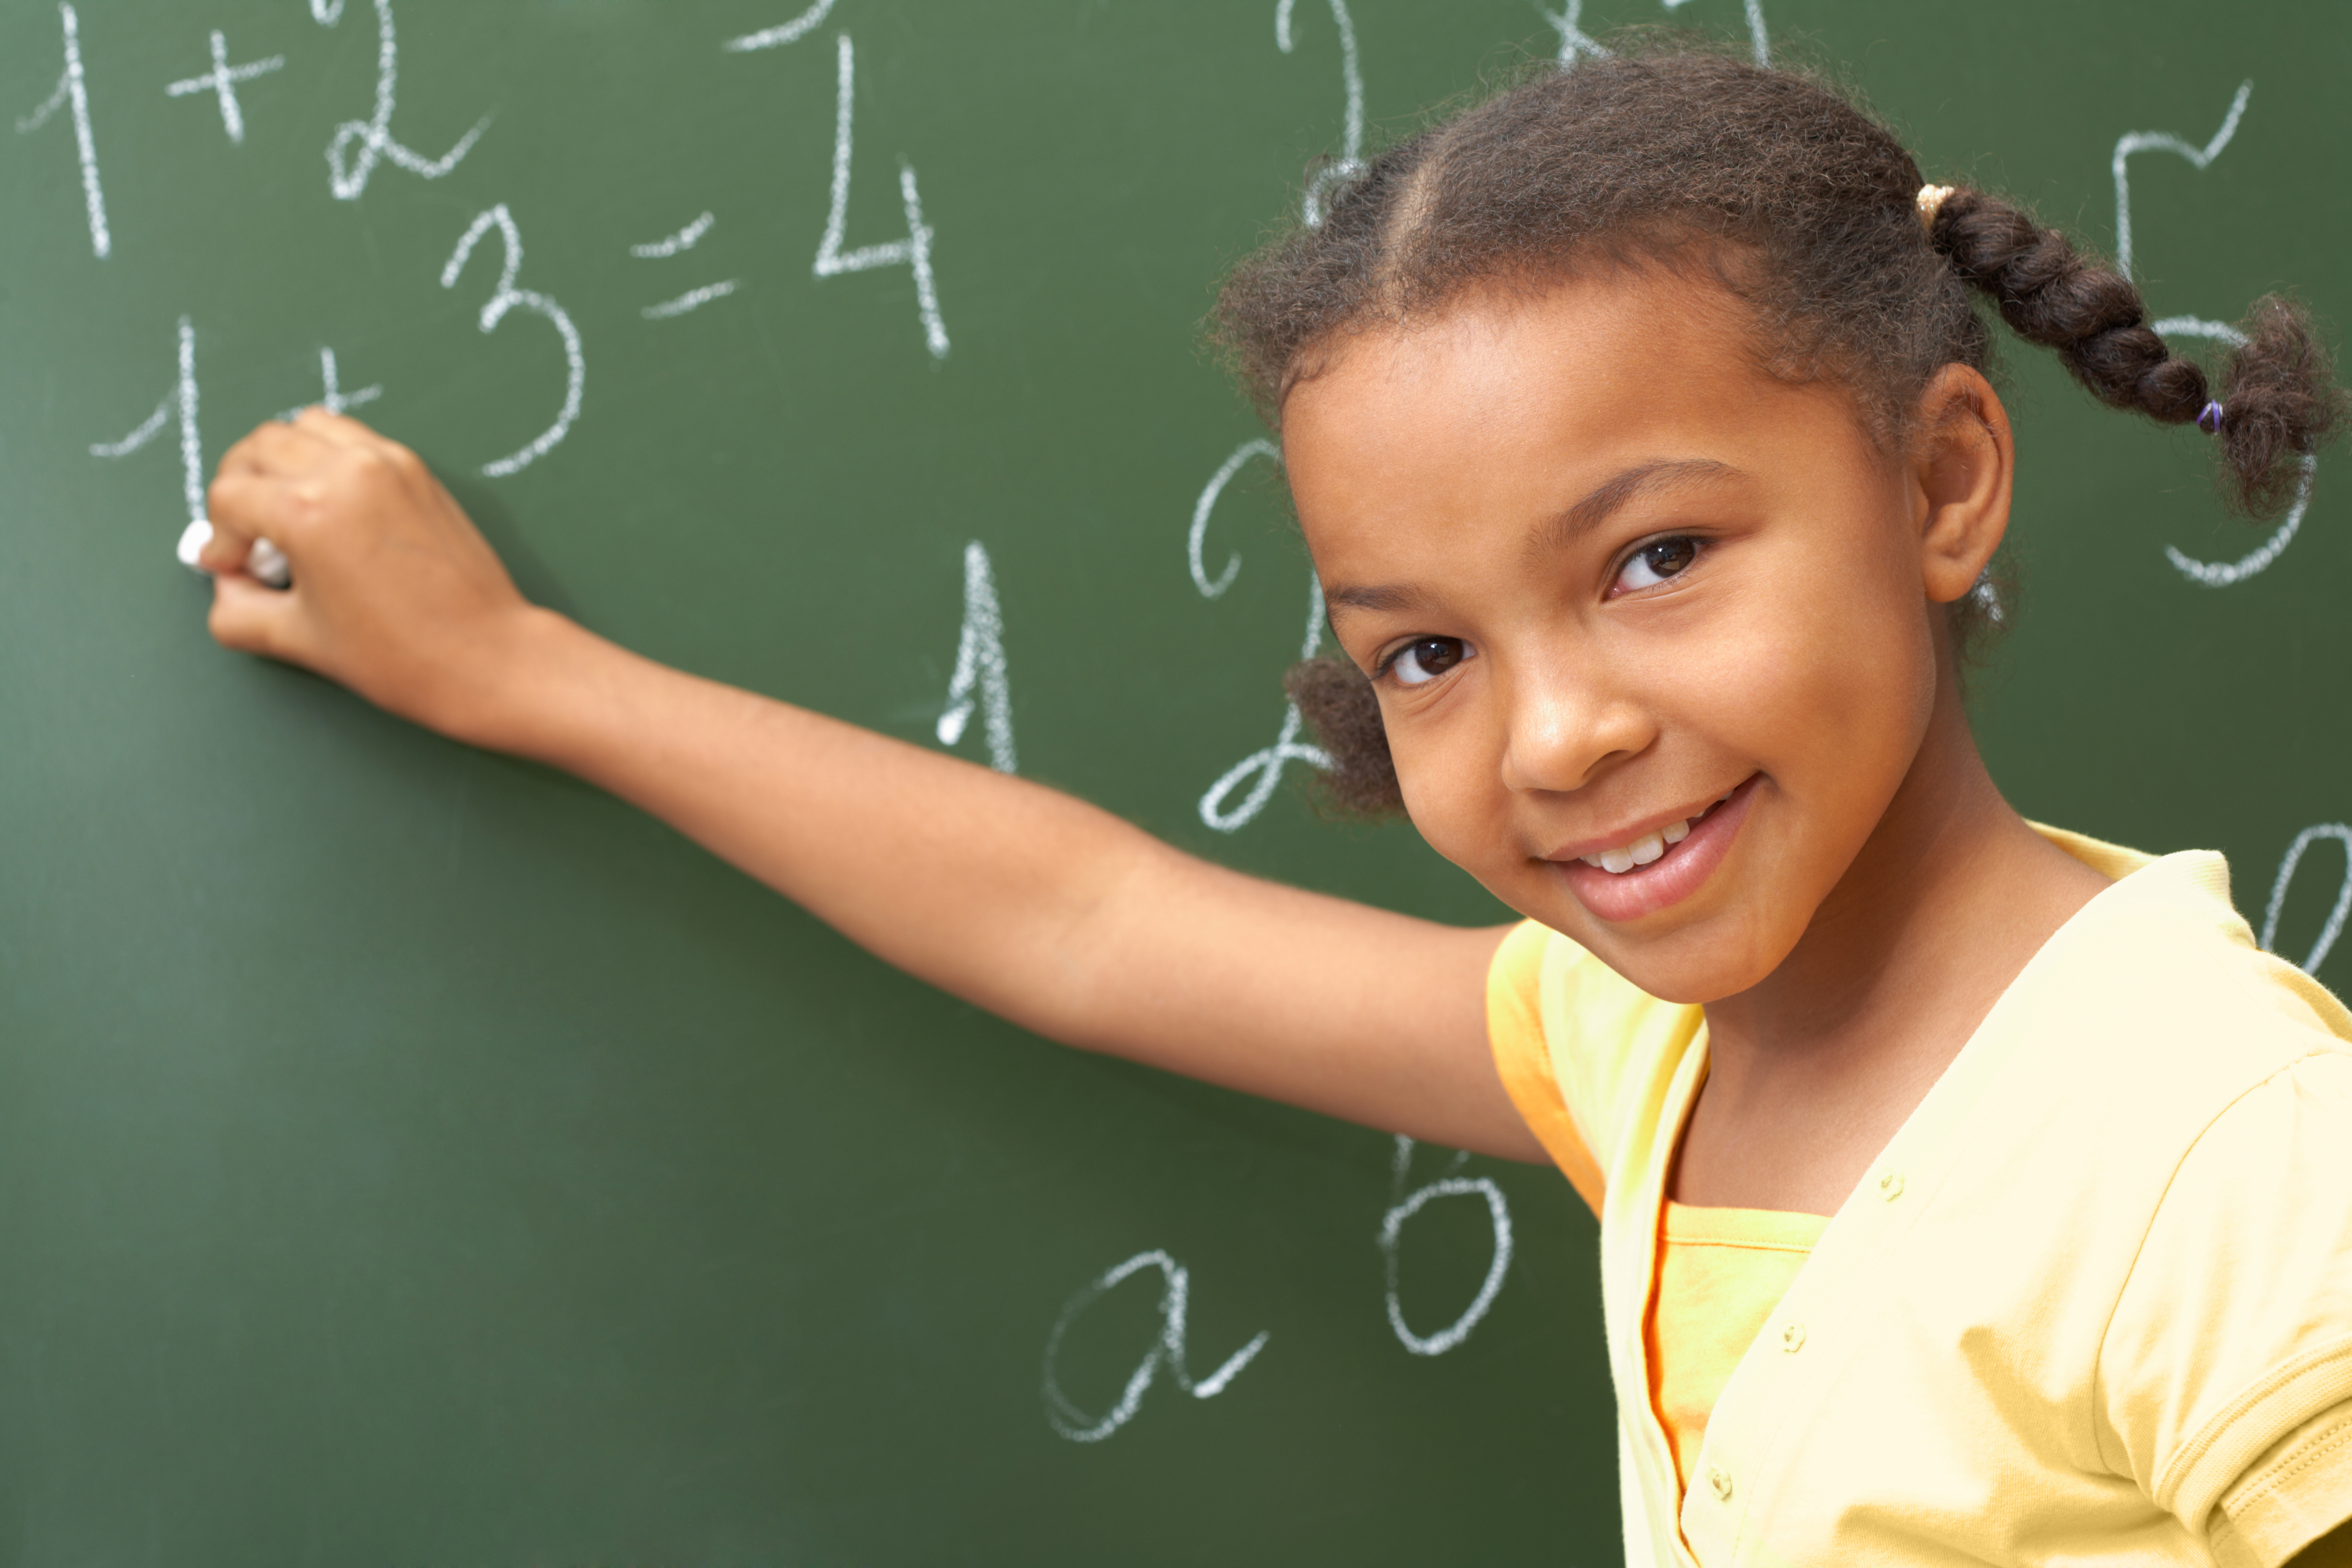 Math Skills In Childhood Can Permanently Affect Brain Formation ...